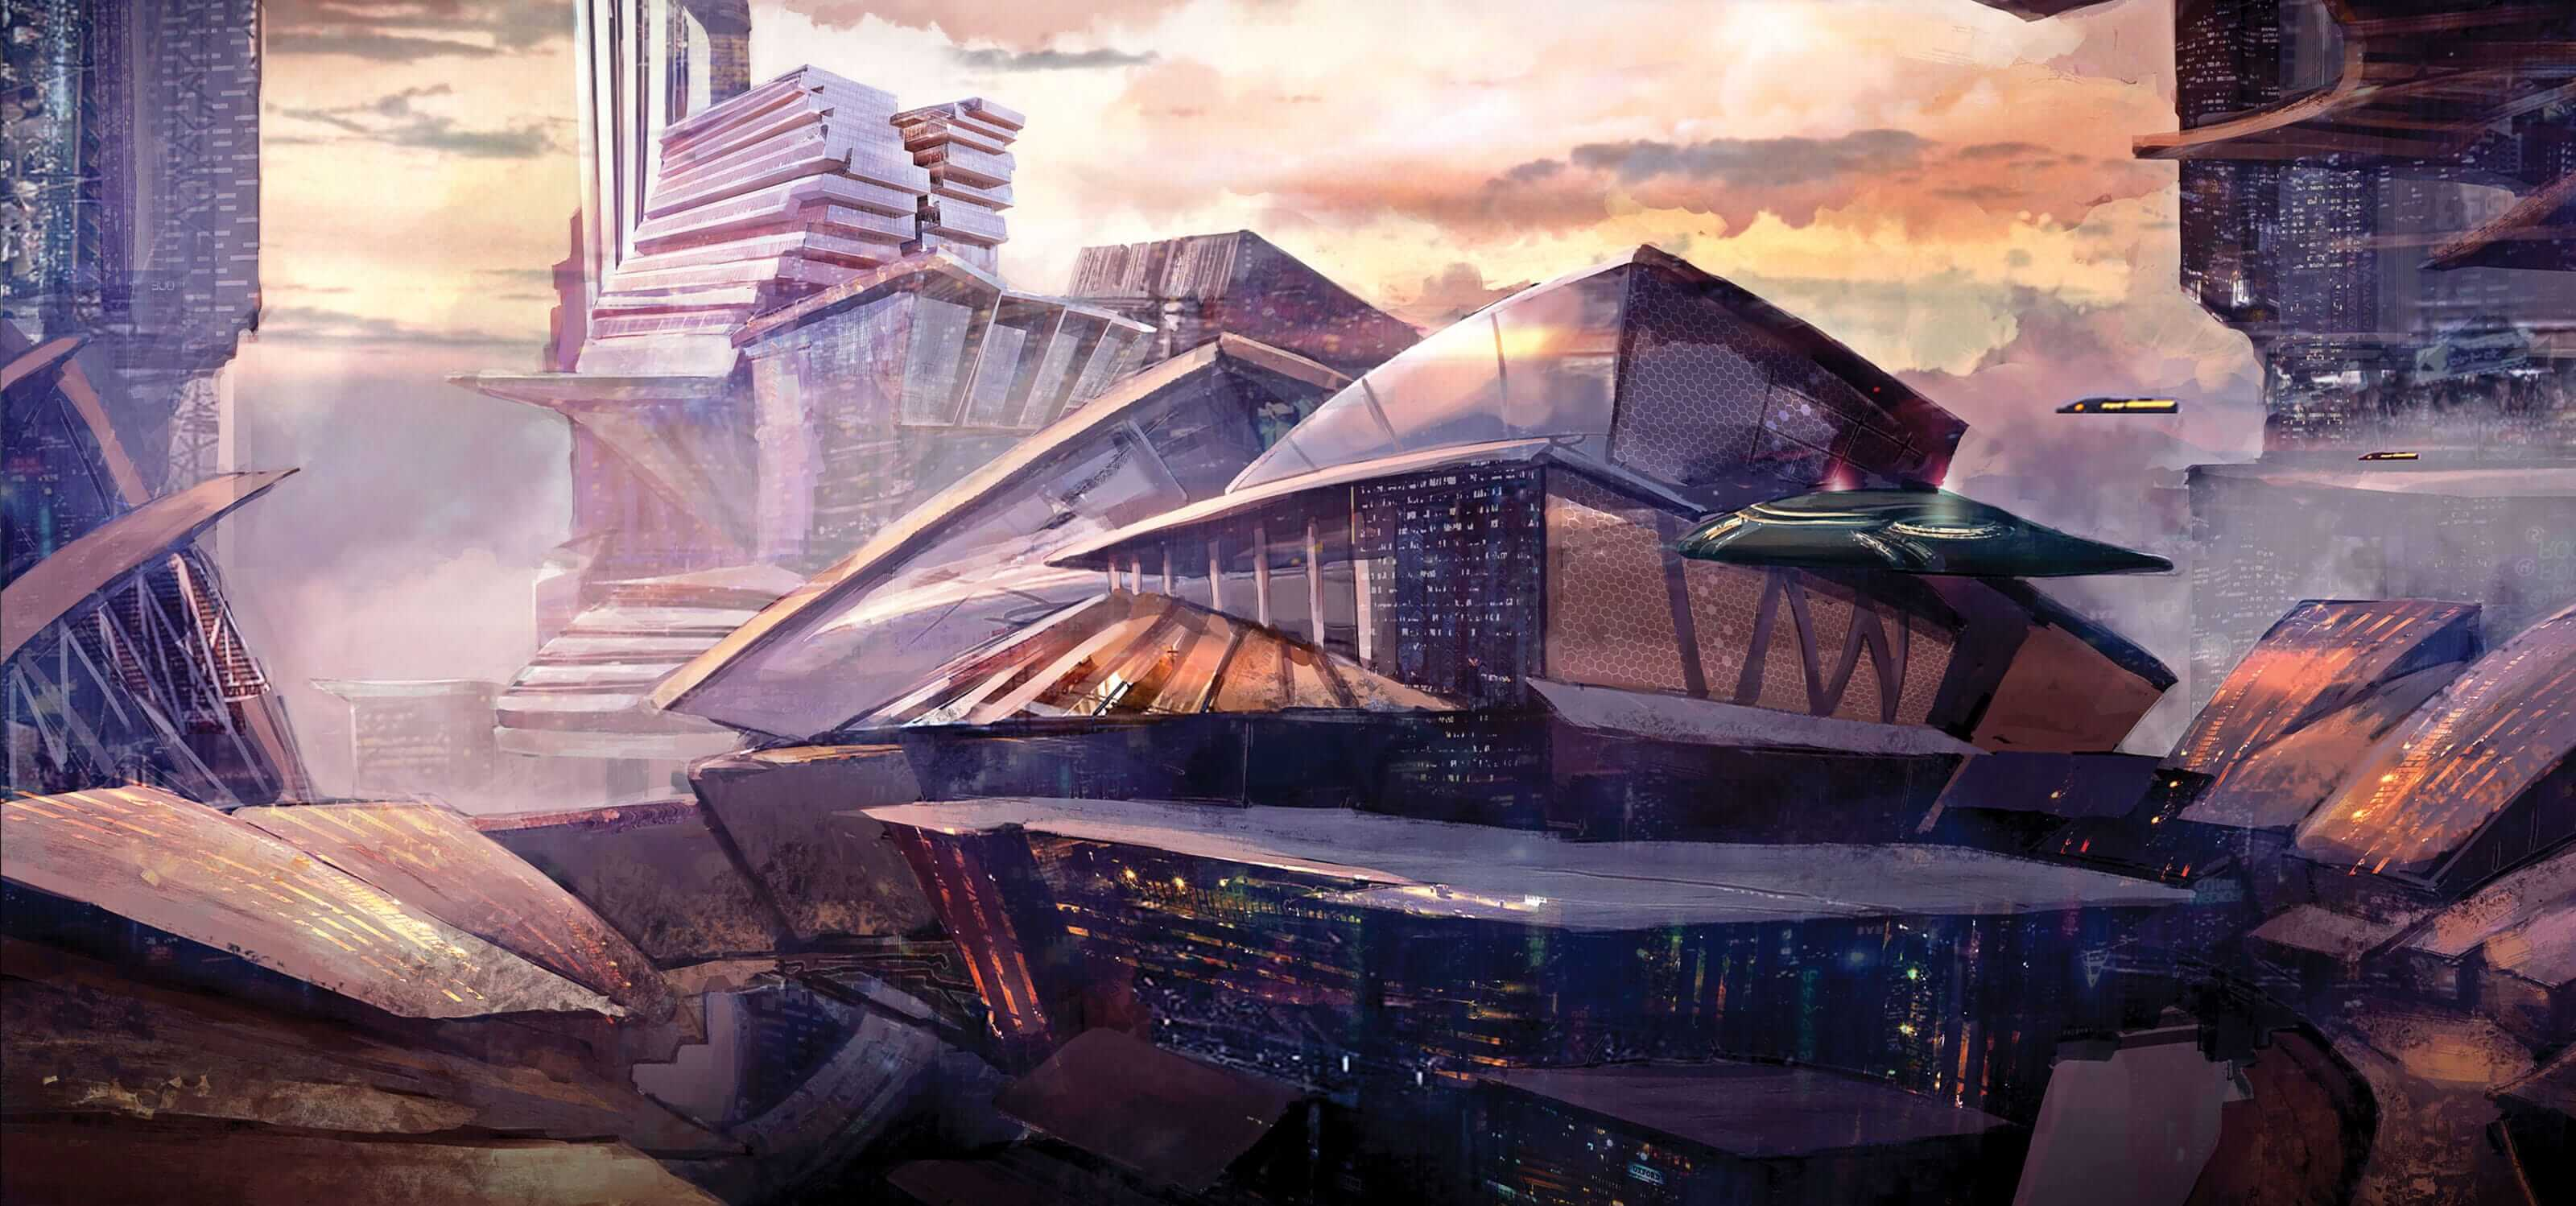 Digital painting of a futuristic cityscape with spaceships flying past a large building